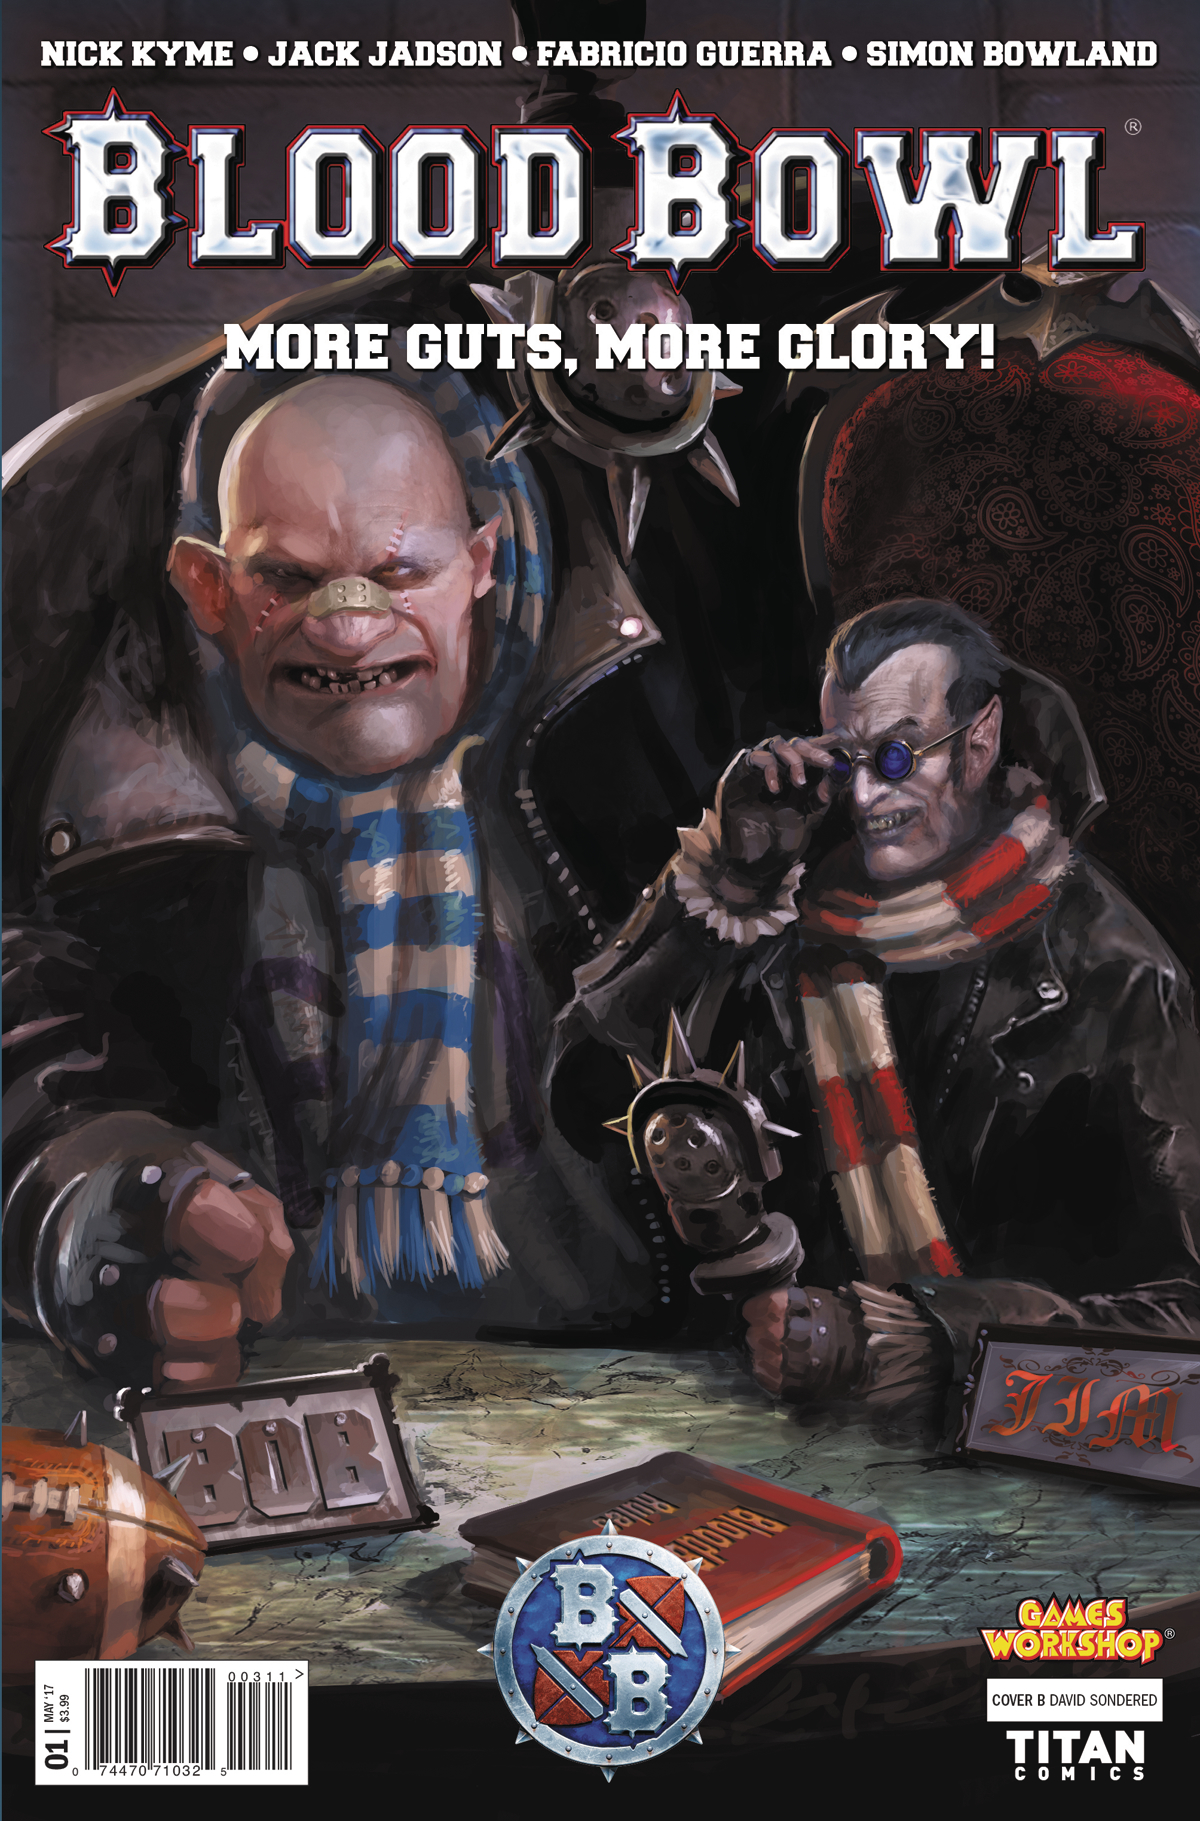 BLOOD BOWL MORE GUTS MORE GLORY #1 (OF 4) CVR B SONDRED